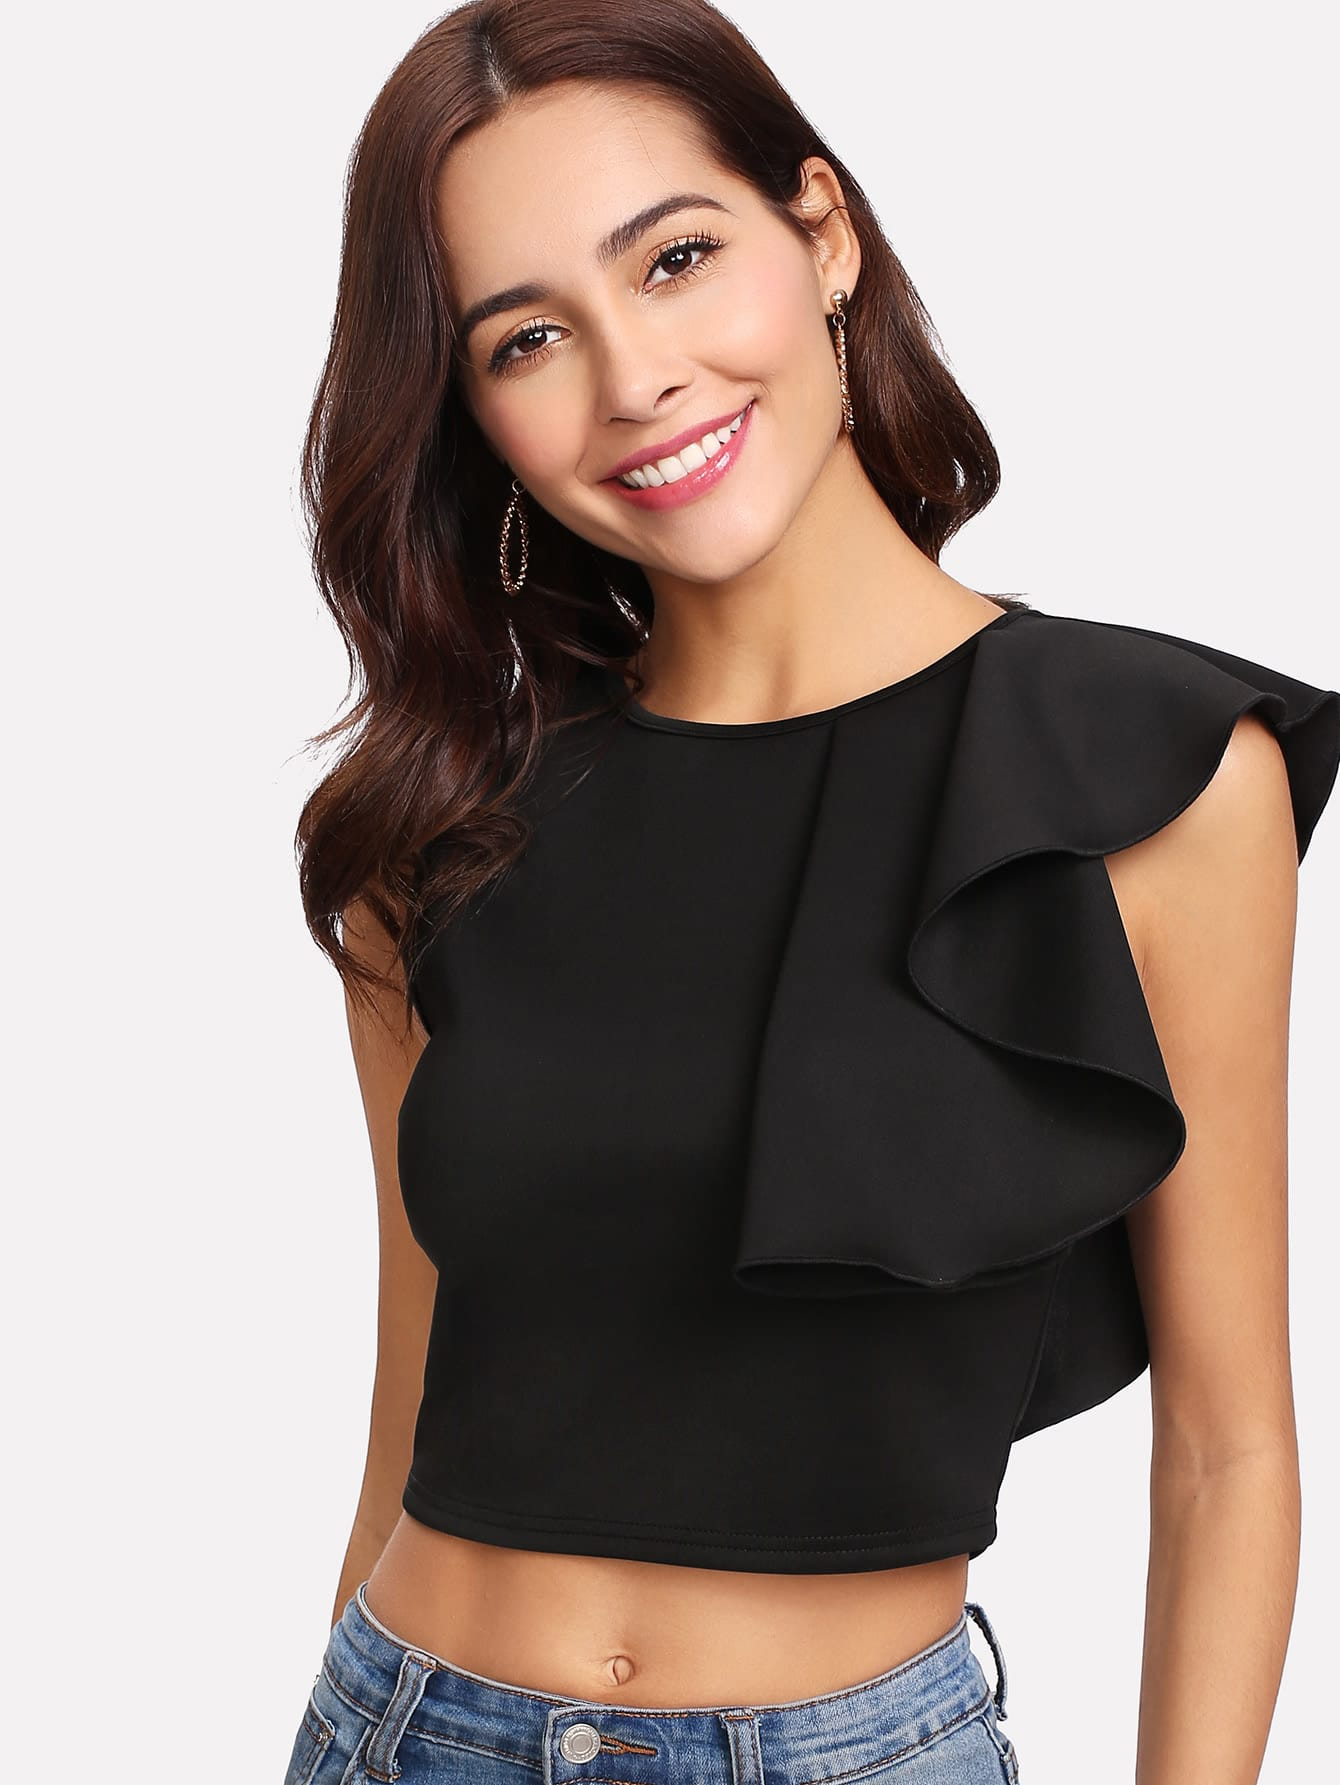 Ruffle Detail Crop Top patchwork ruffle detail top